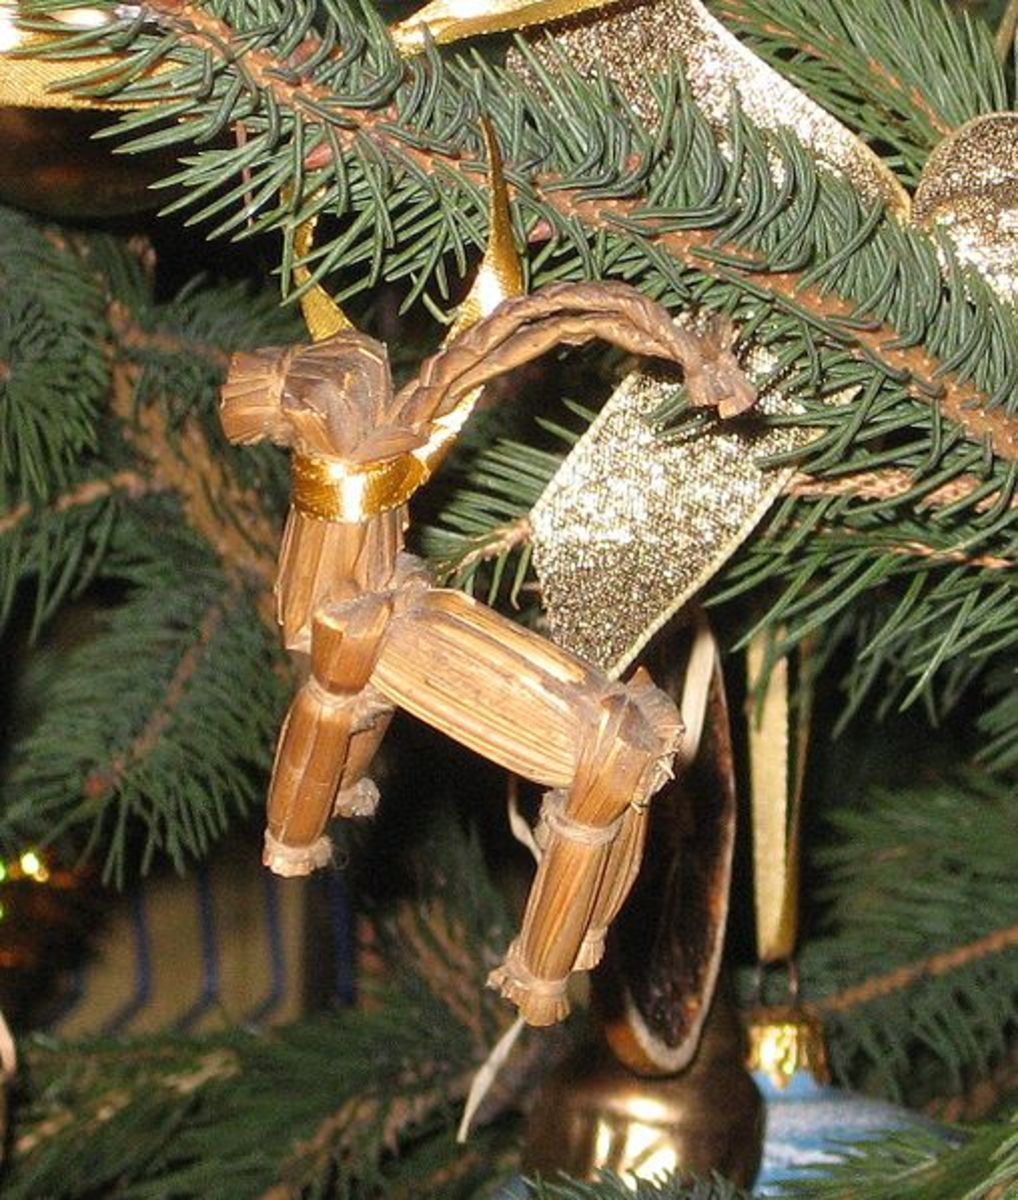 A Christmas Tree Decoration in the Shape of a Goat